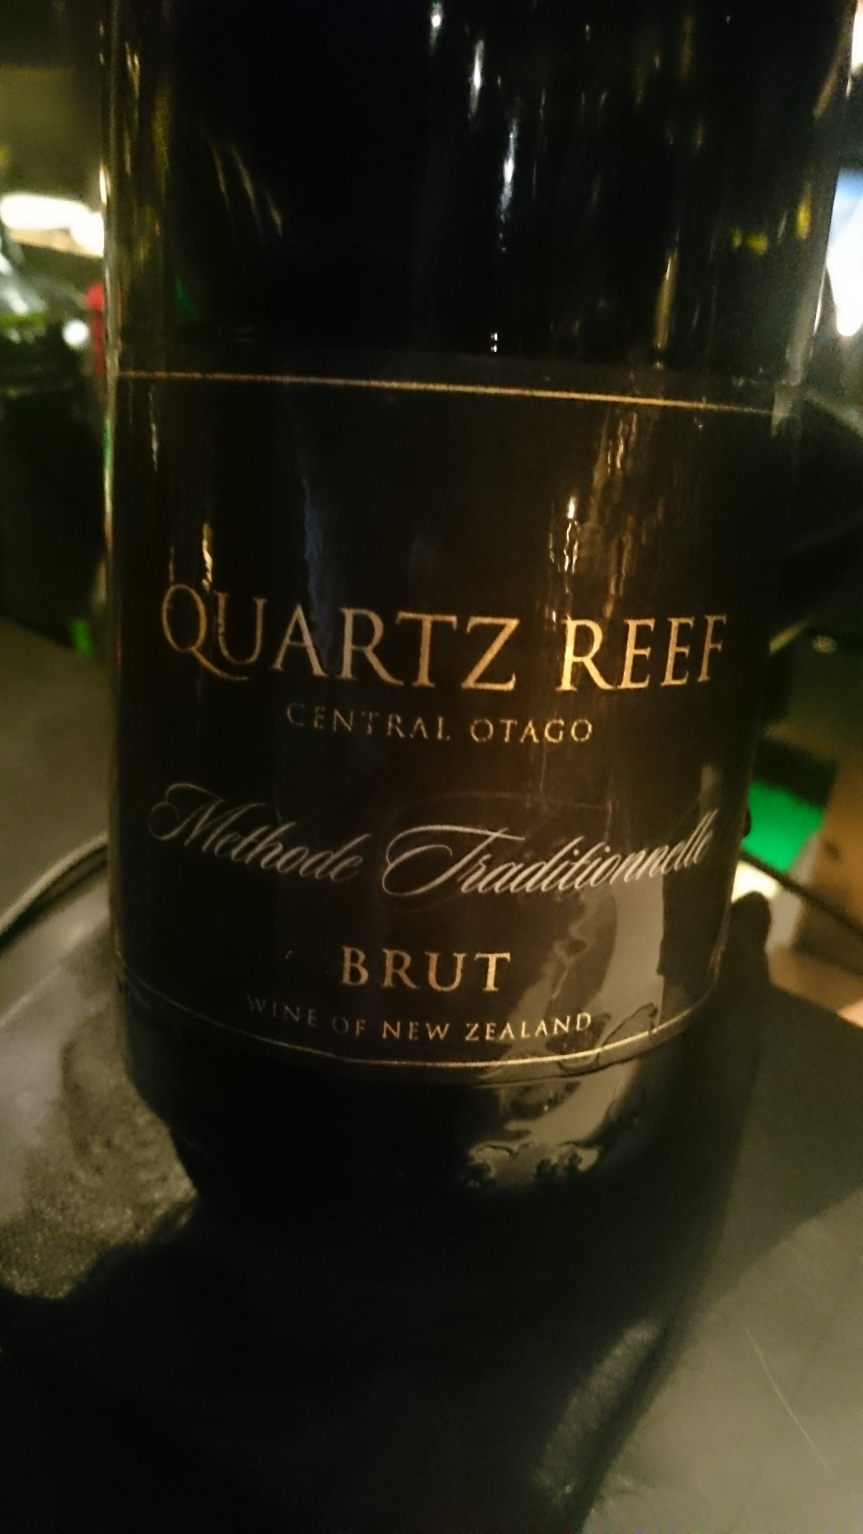 Wine Review: Quartz Reef Chauvet Method Traditionelle